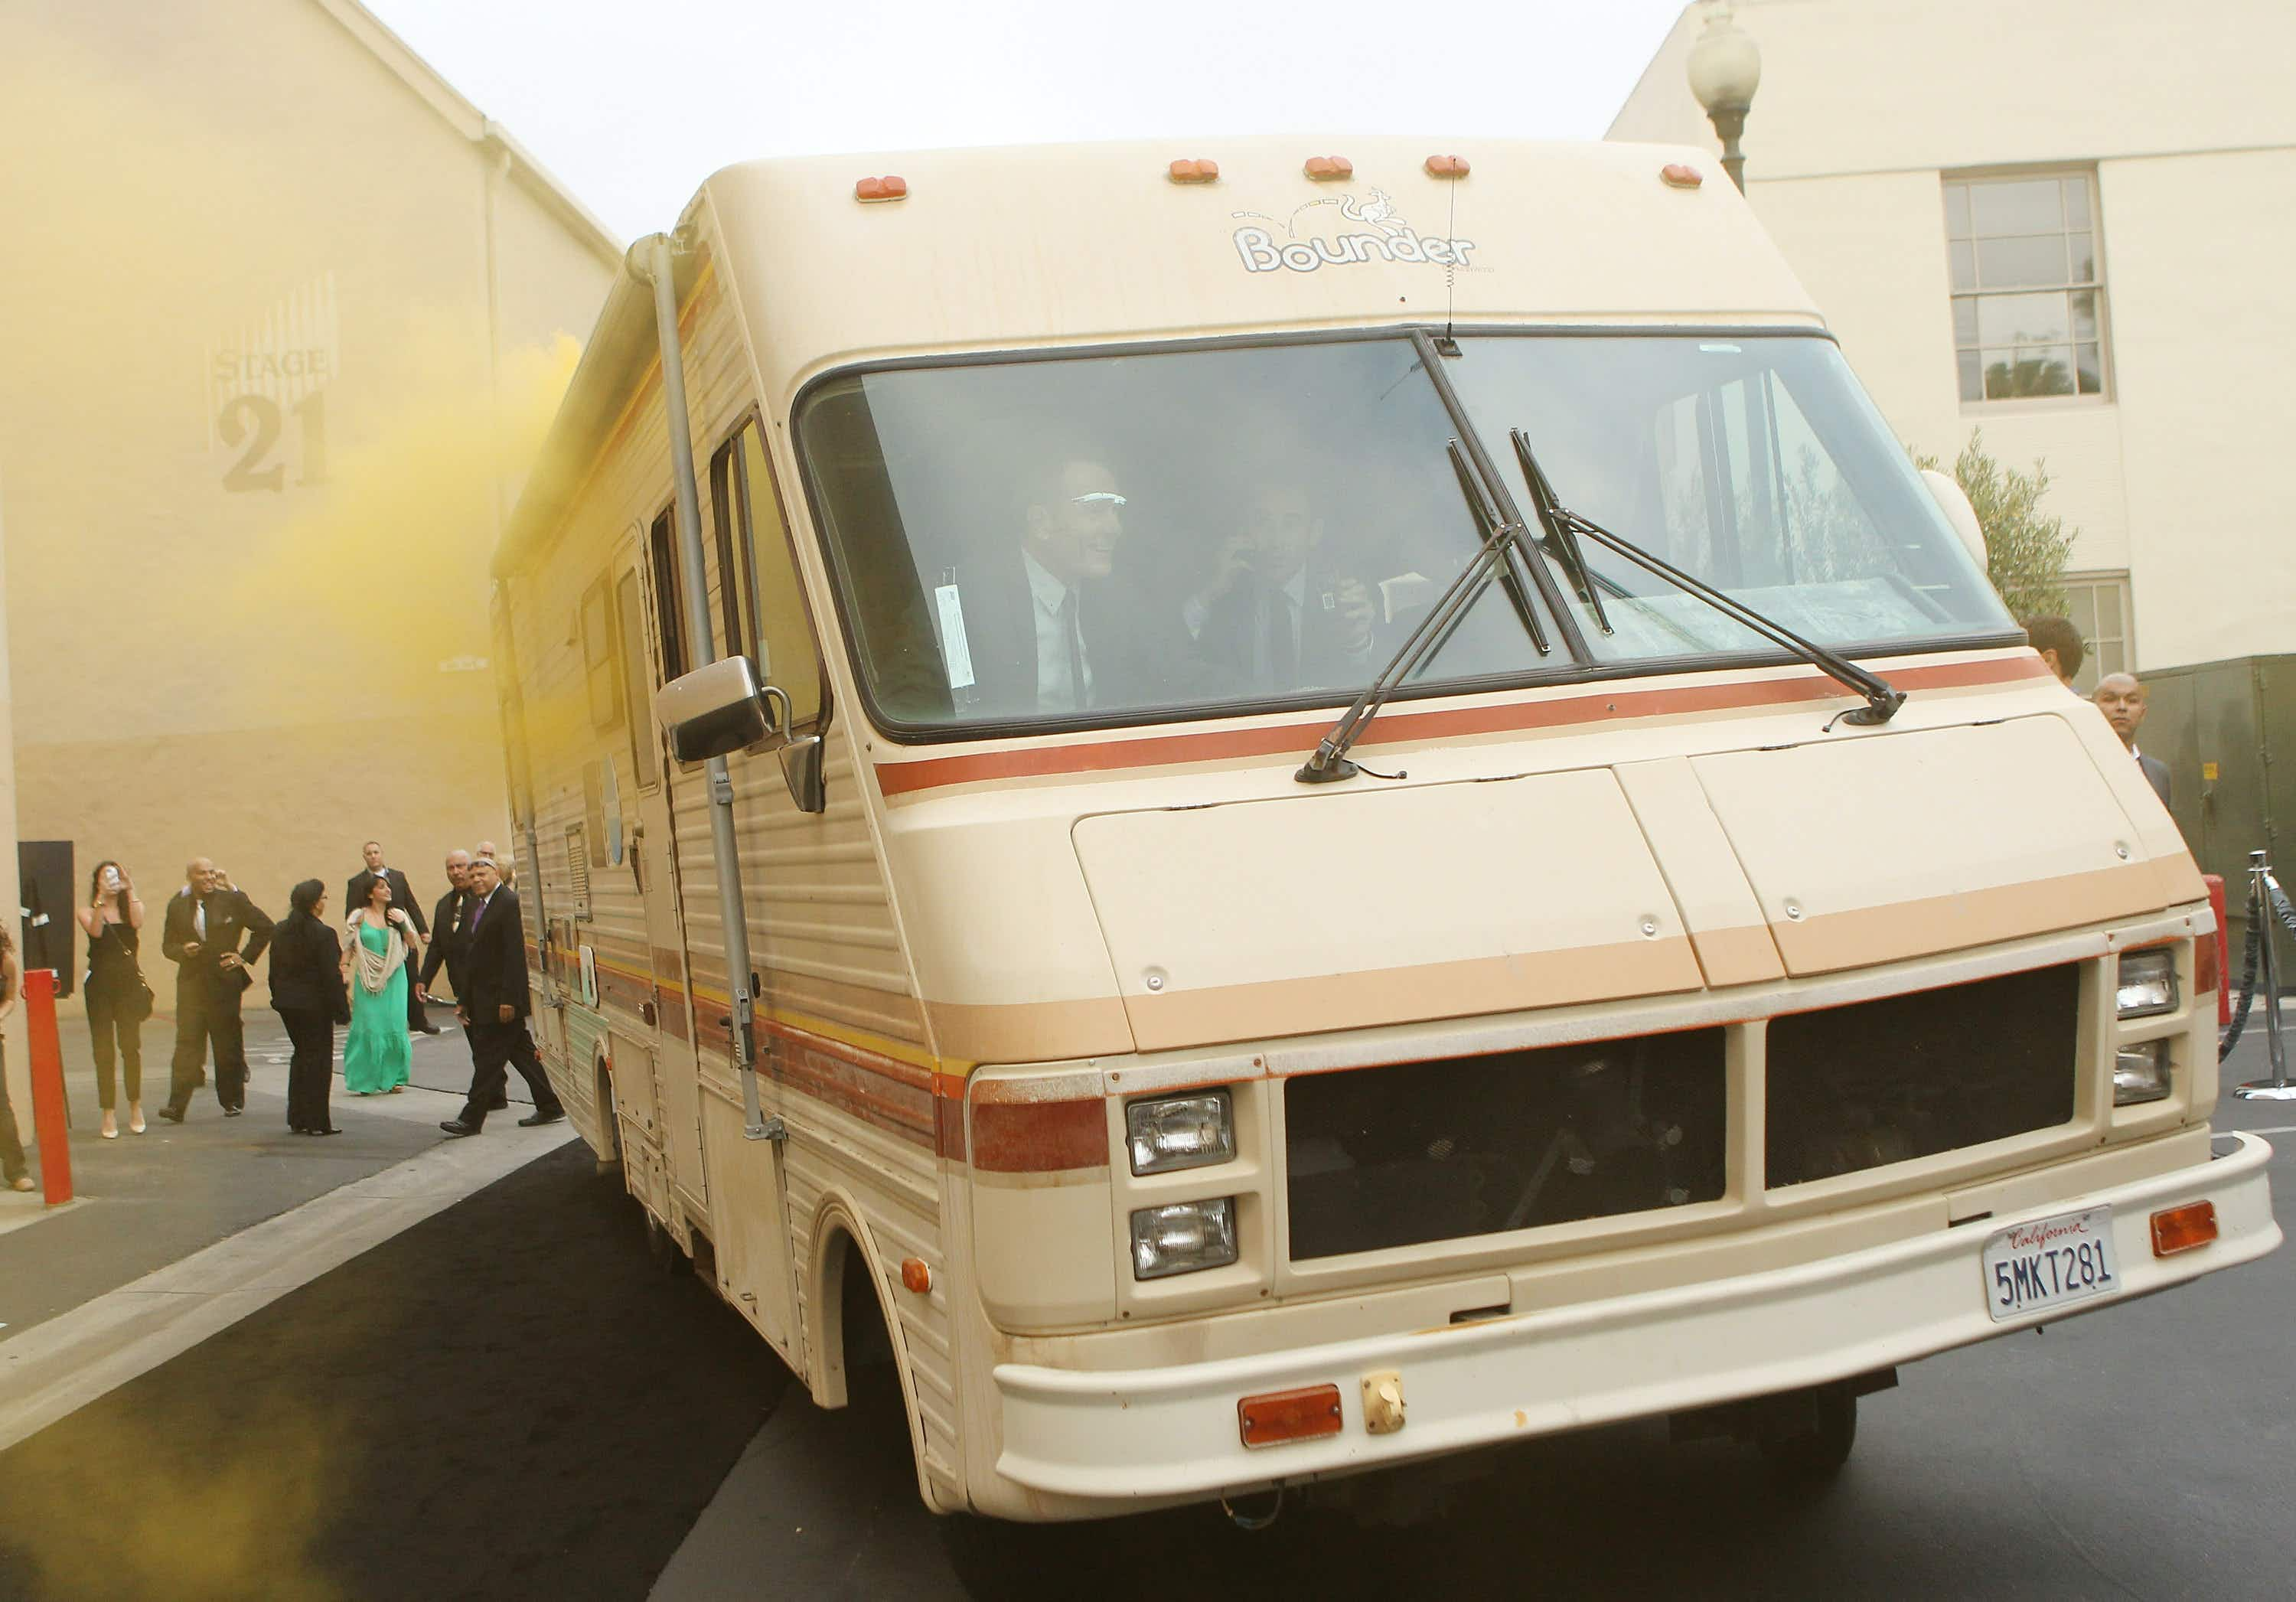 Real-life Breaking Bad? Second-hand campervan buyers in NZ warned to check vehicle history